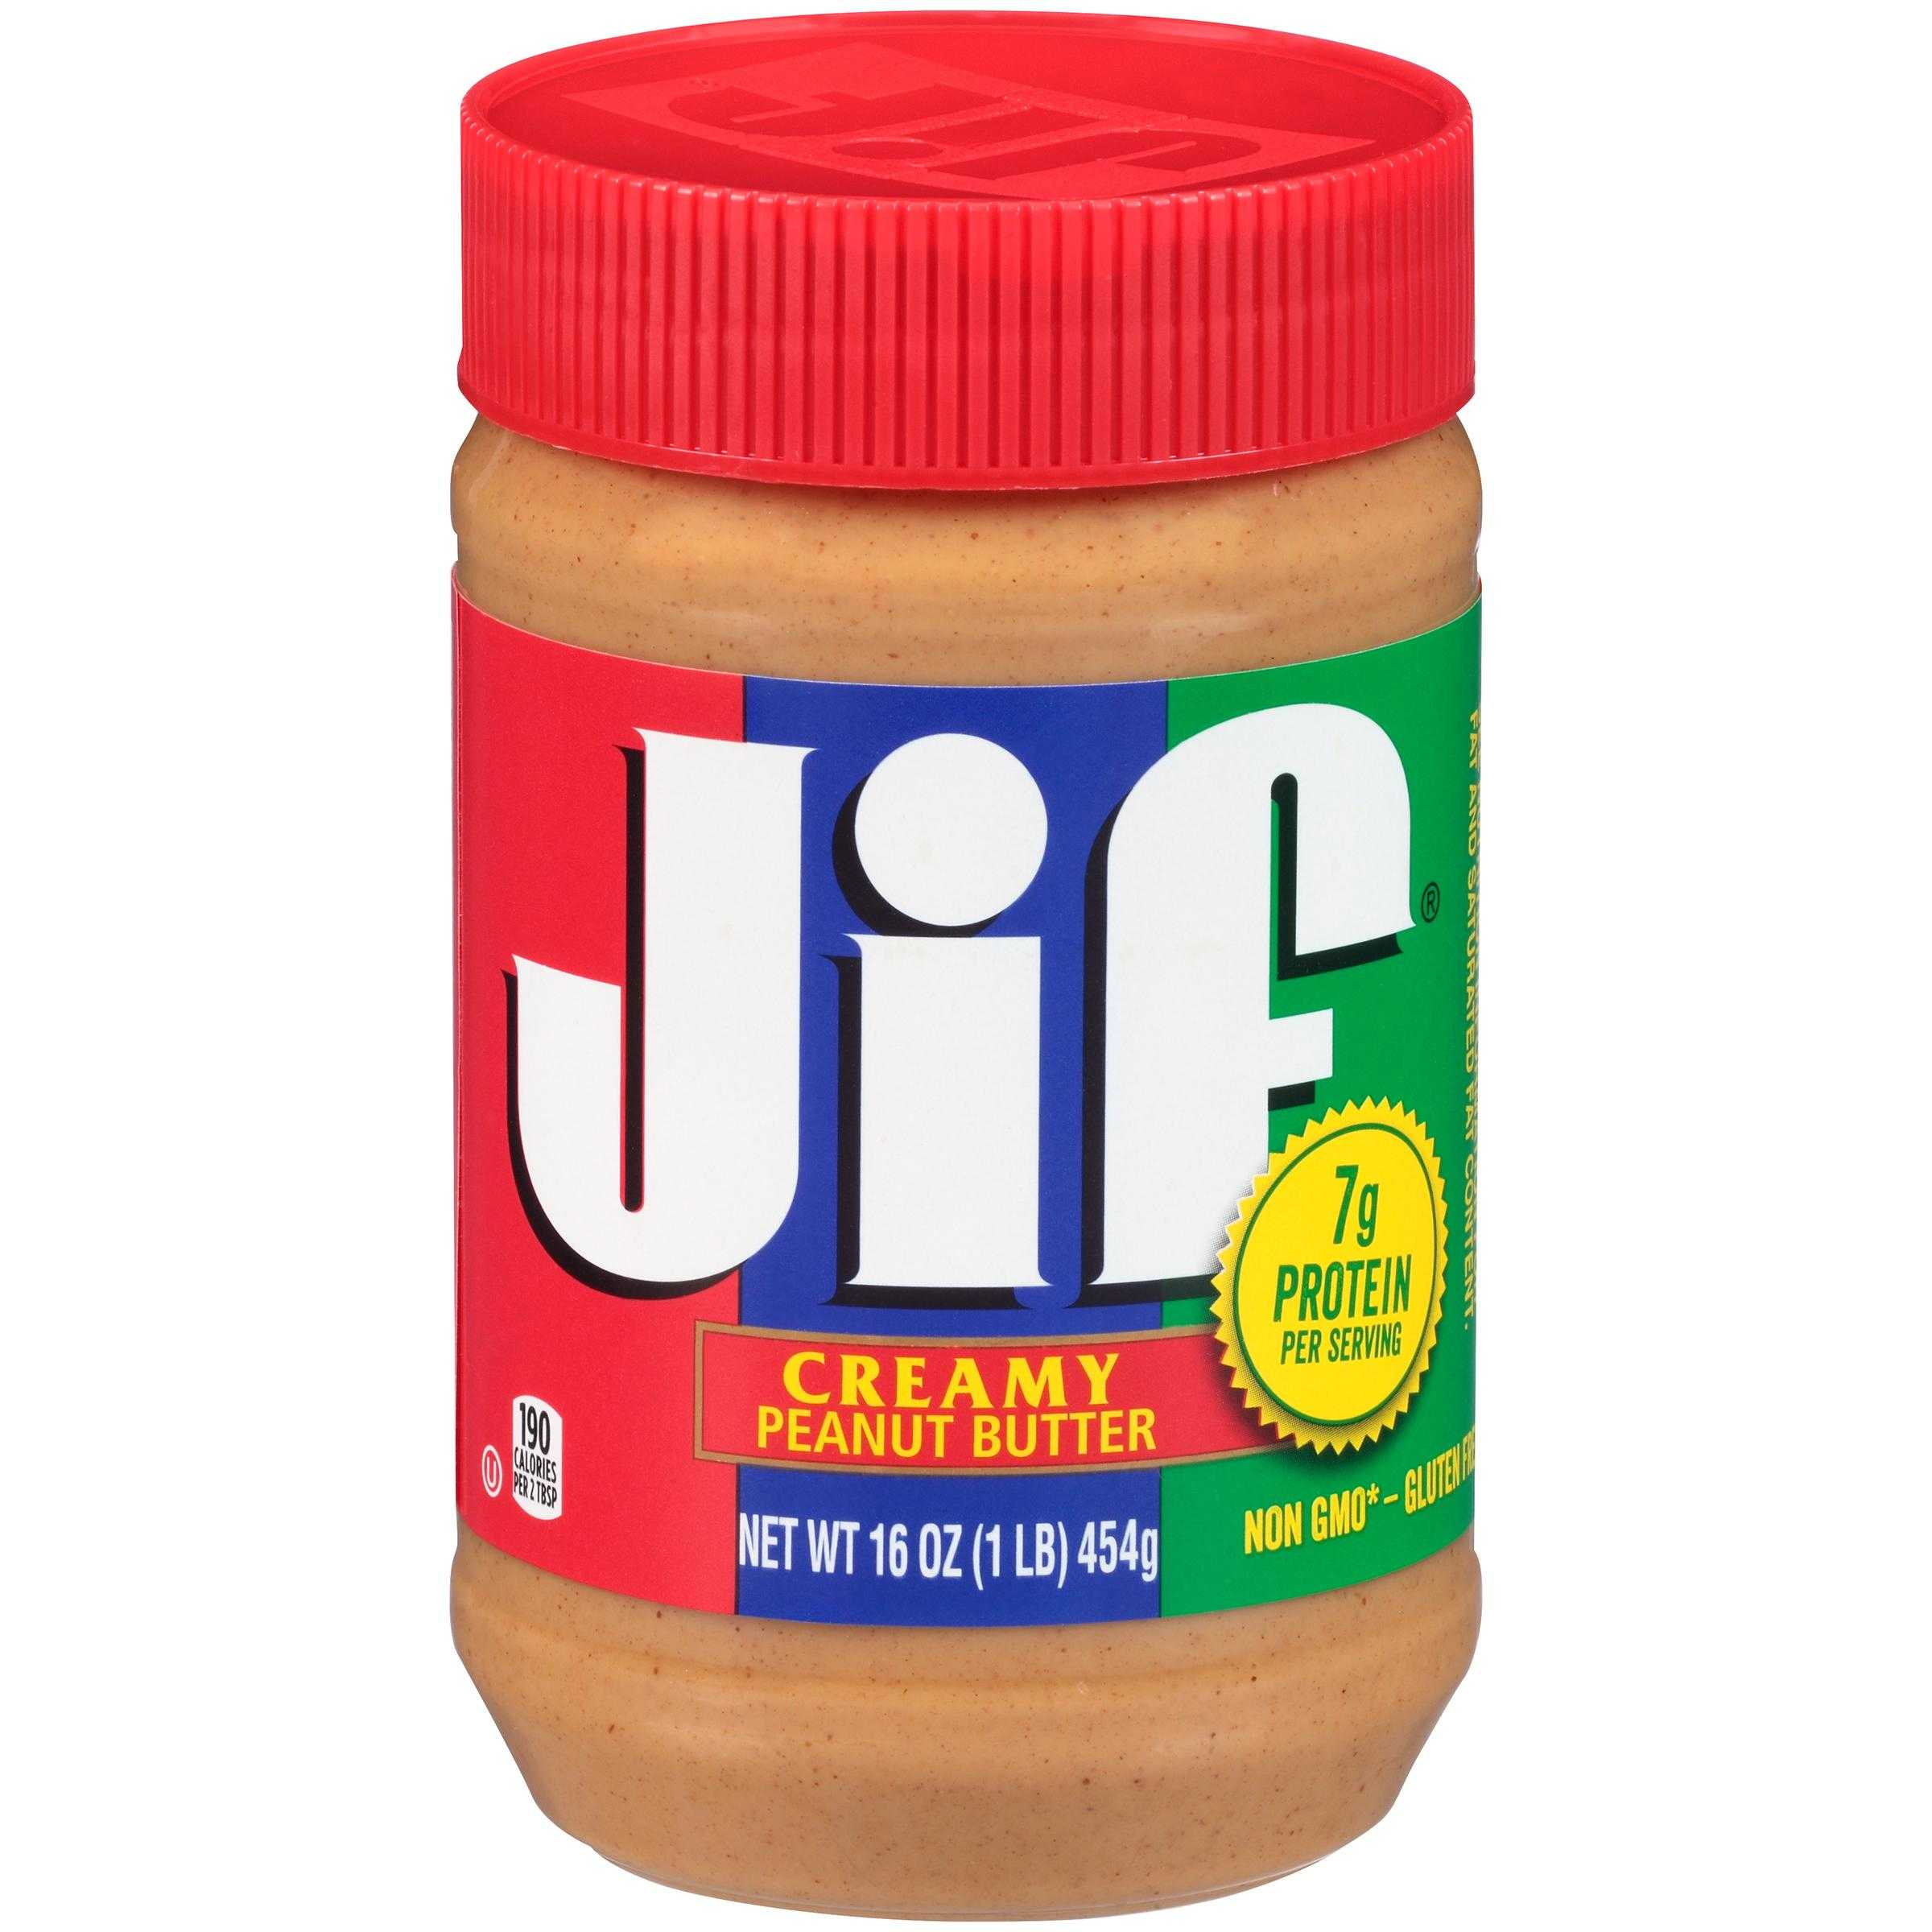 jif 16 oz creamy peanut butter - smucker away from home